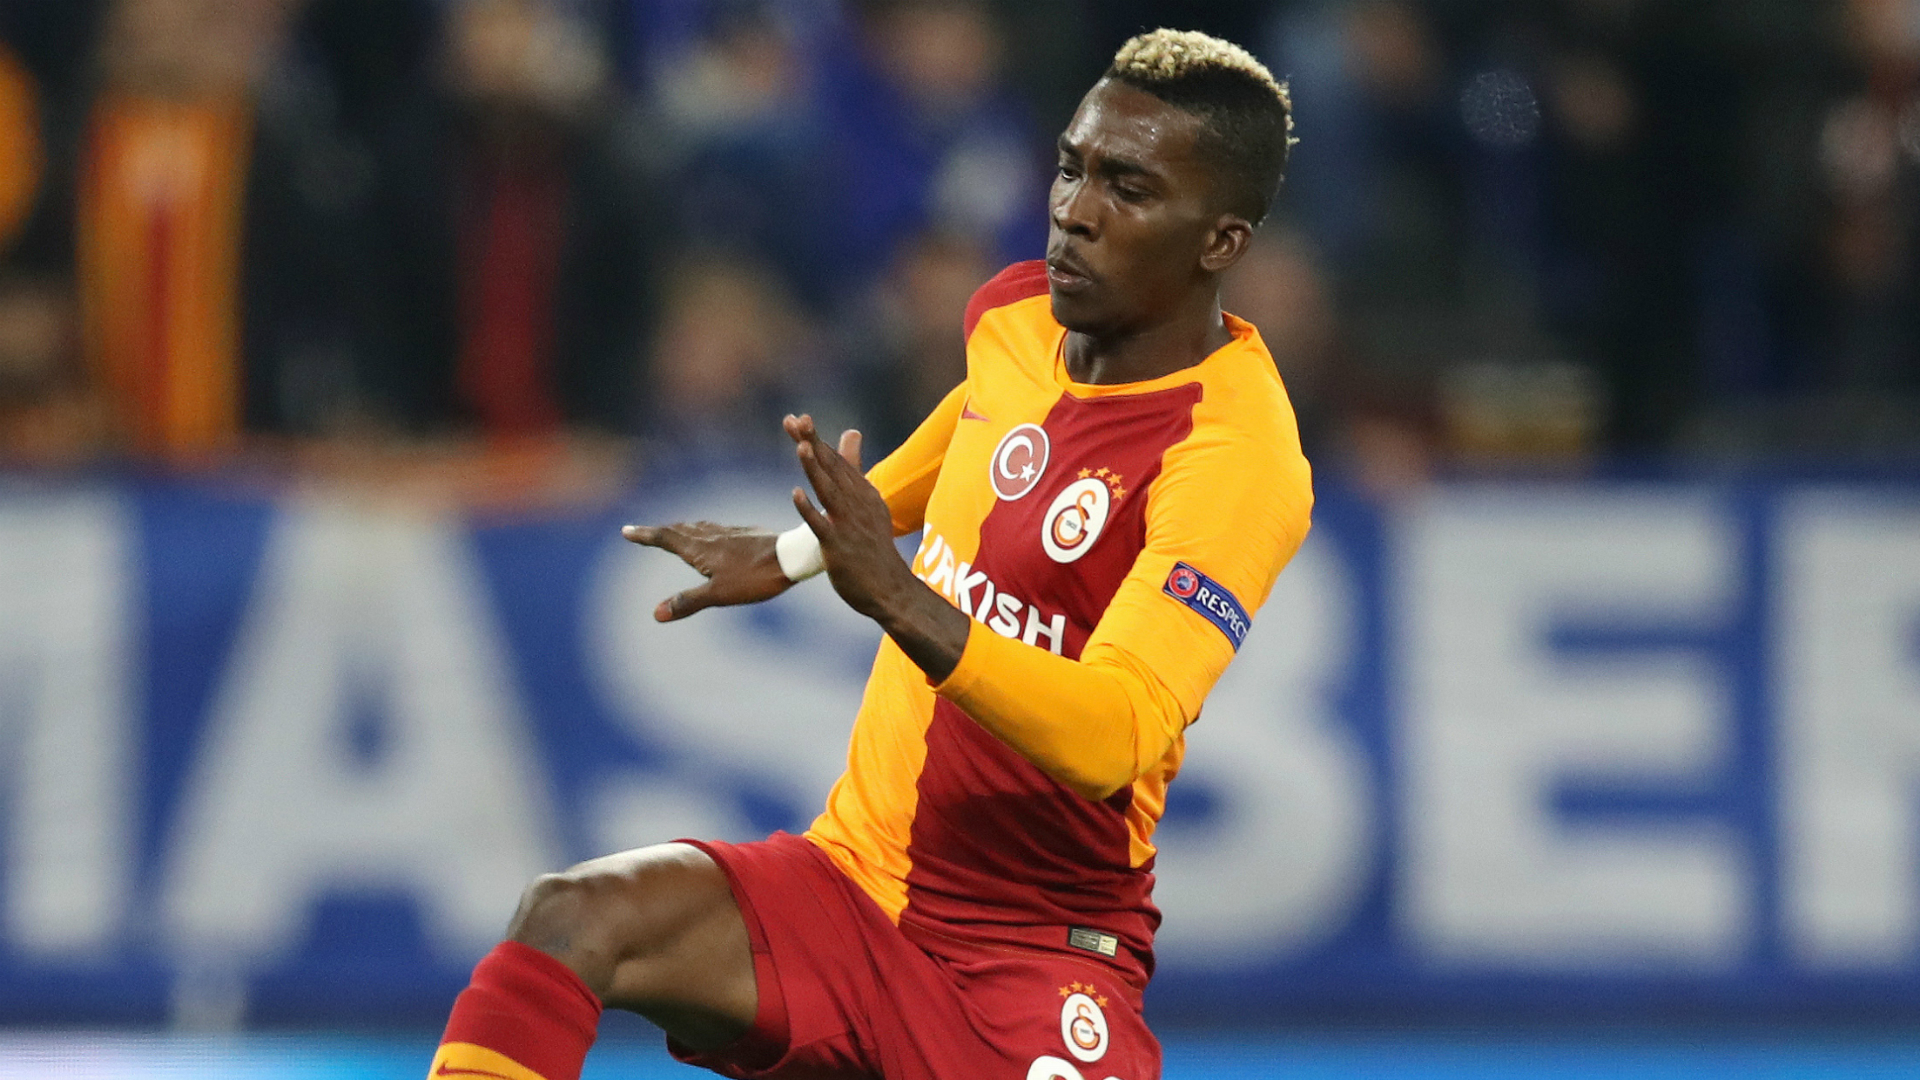 Onyekuru: Why I want to repay Terim at Galatasaray